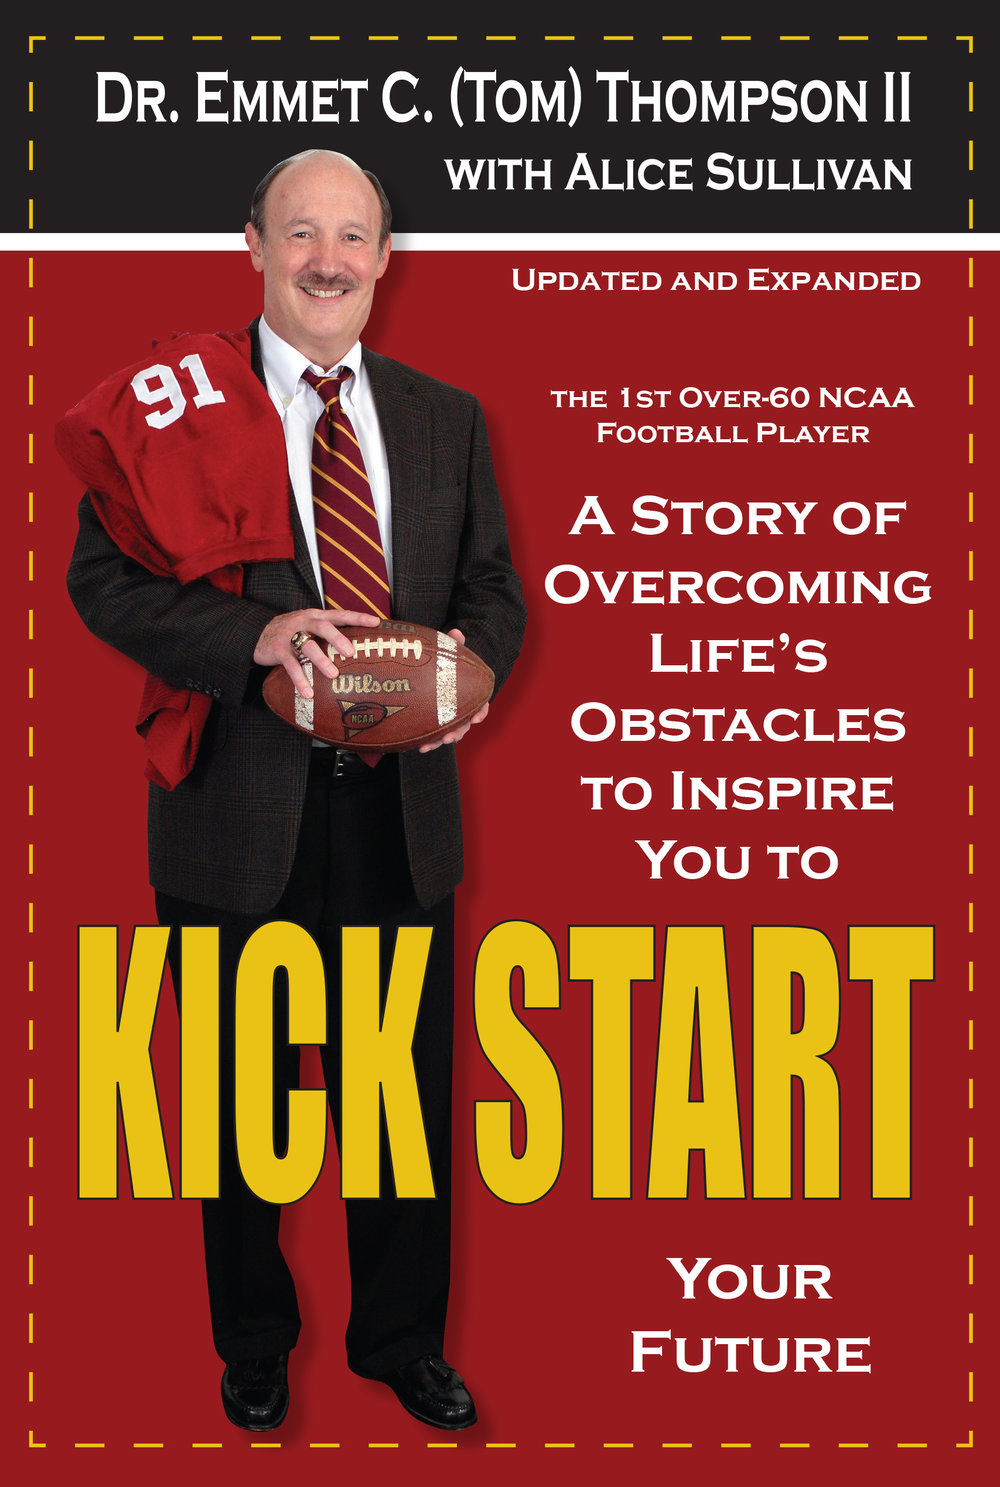 The new updated and expanded edition of Kick Start, by Dr. Emmet C. (Tom) Thompson II, releases today, January 31. 2017. (Roark Photography photo)